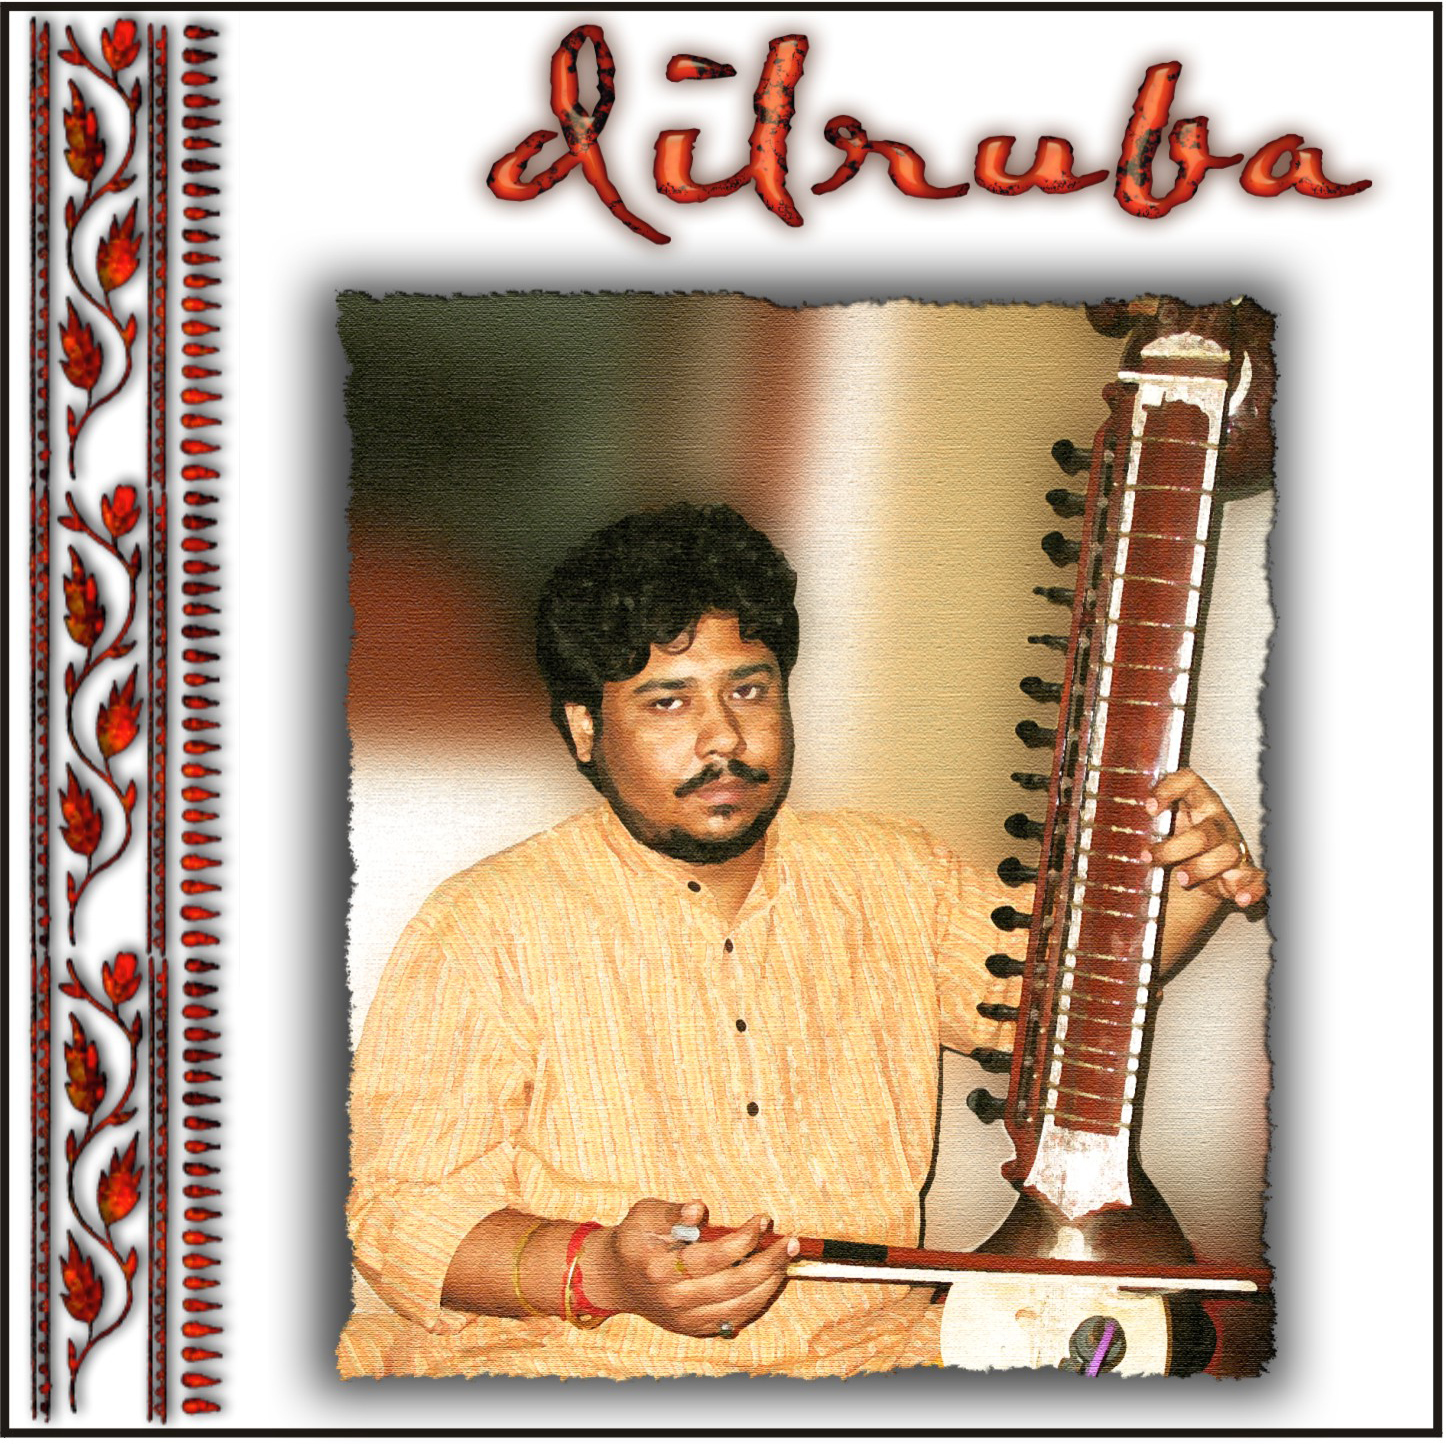 Dilruba Instrumental music of India